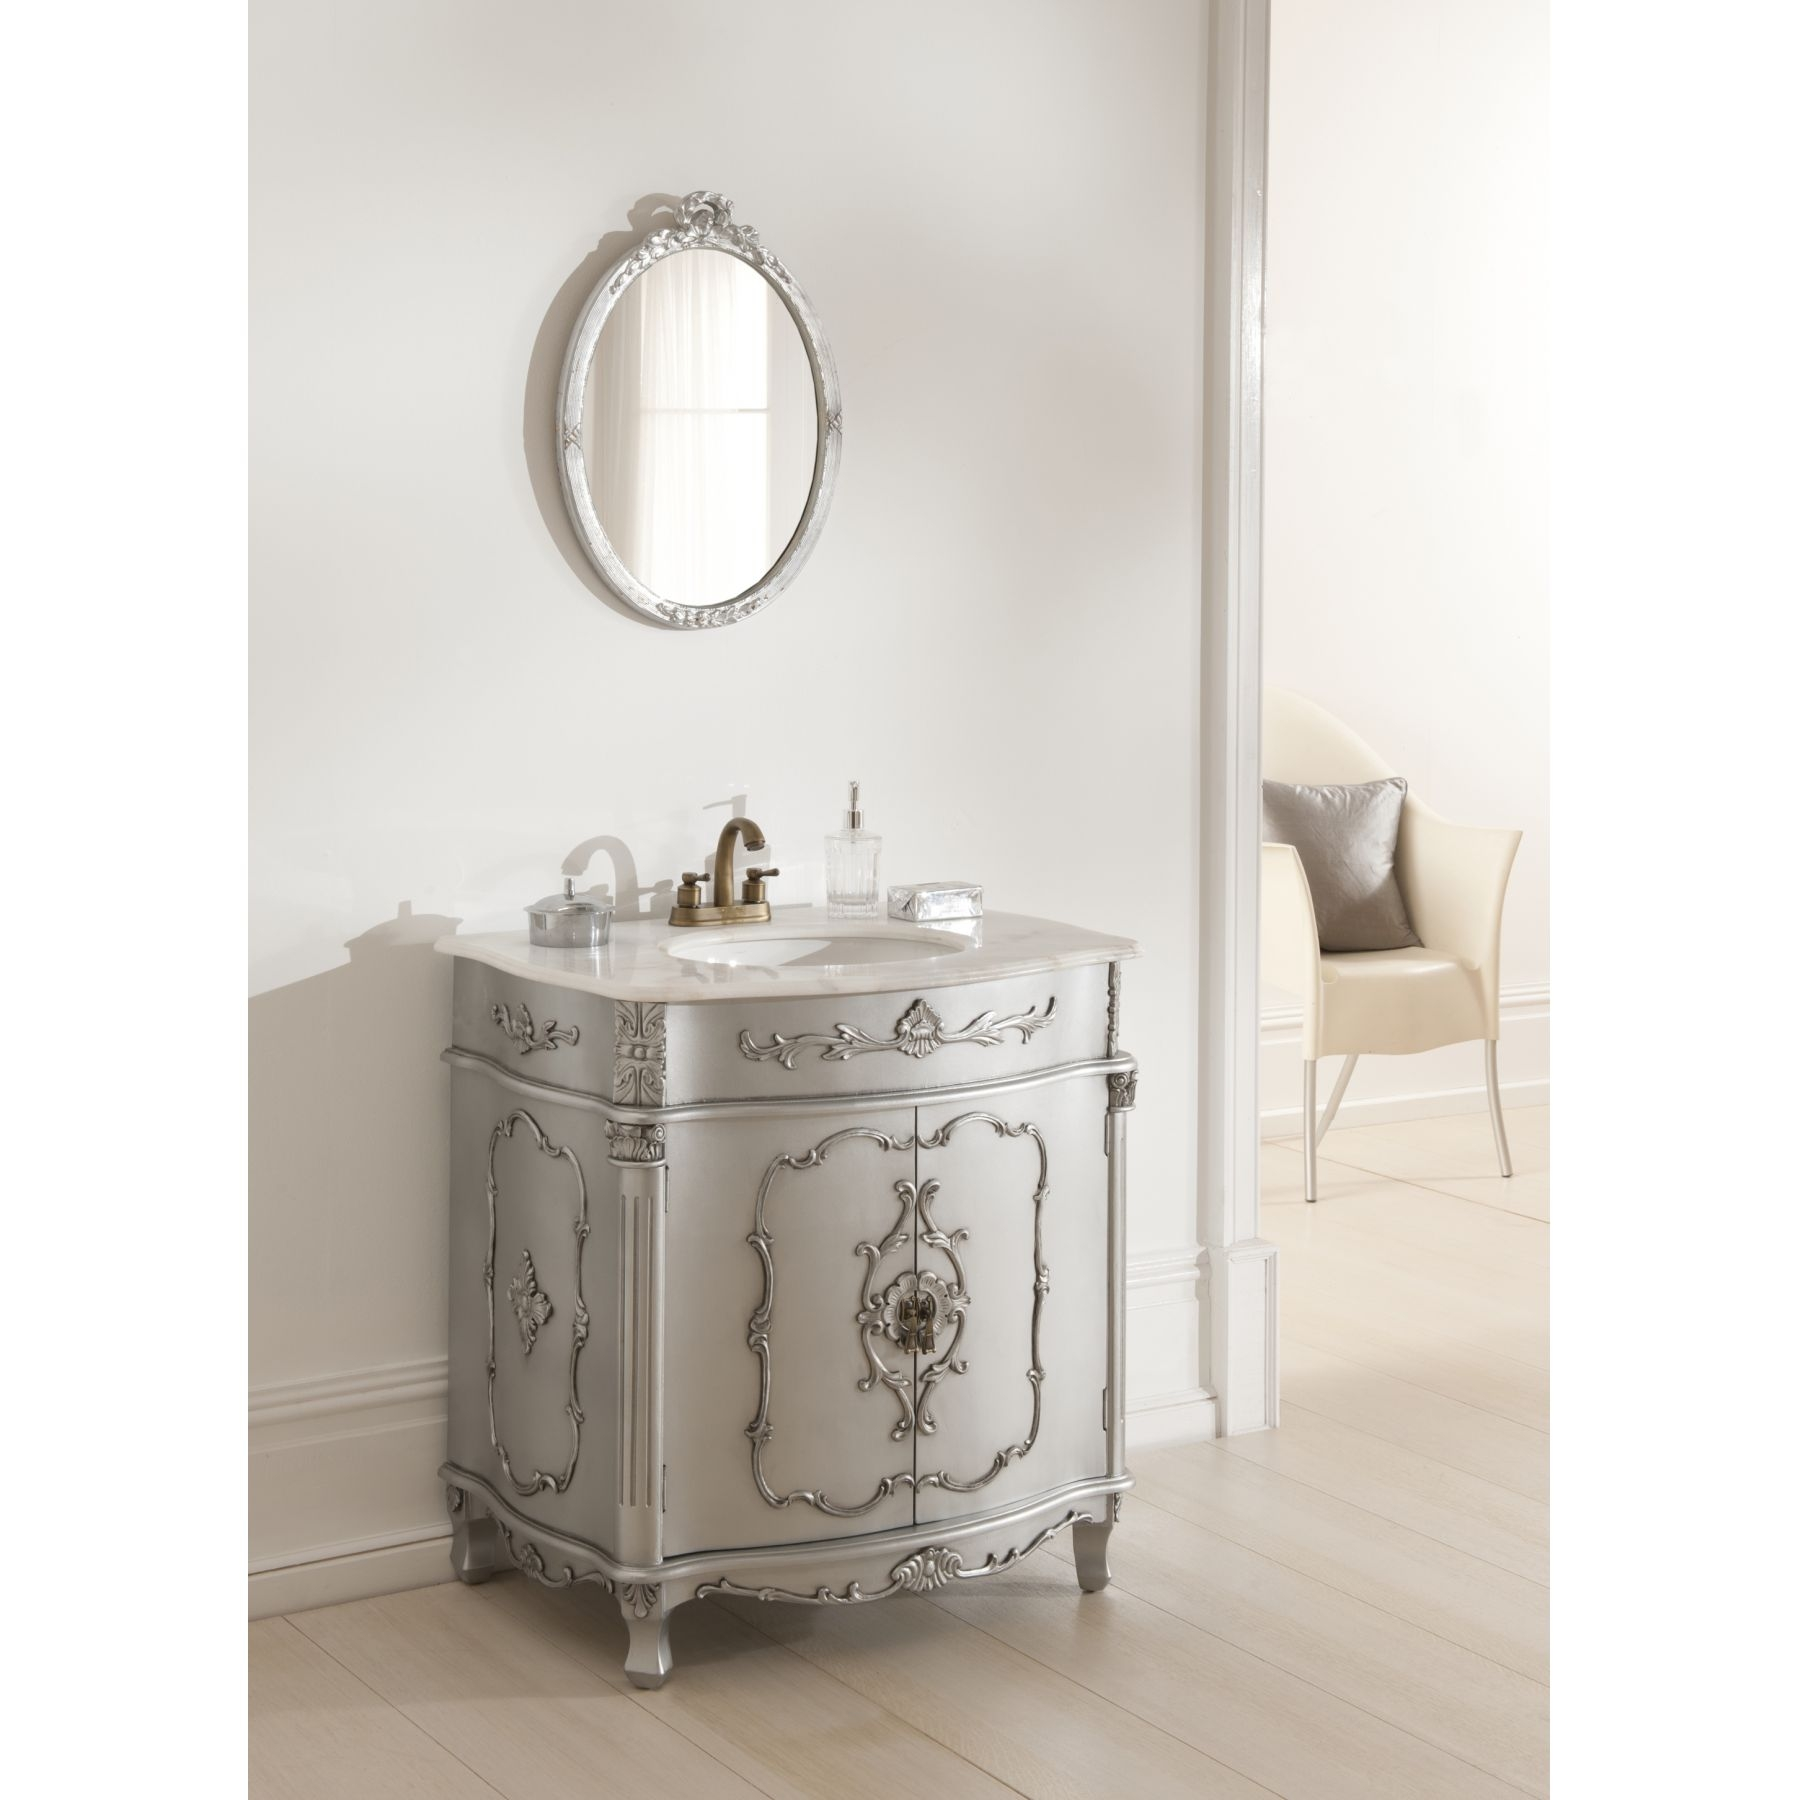 vintage bathroom mirror 15 photos vintage bathroom mirrors mirror ideas 14961